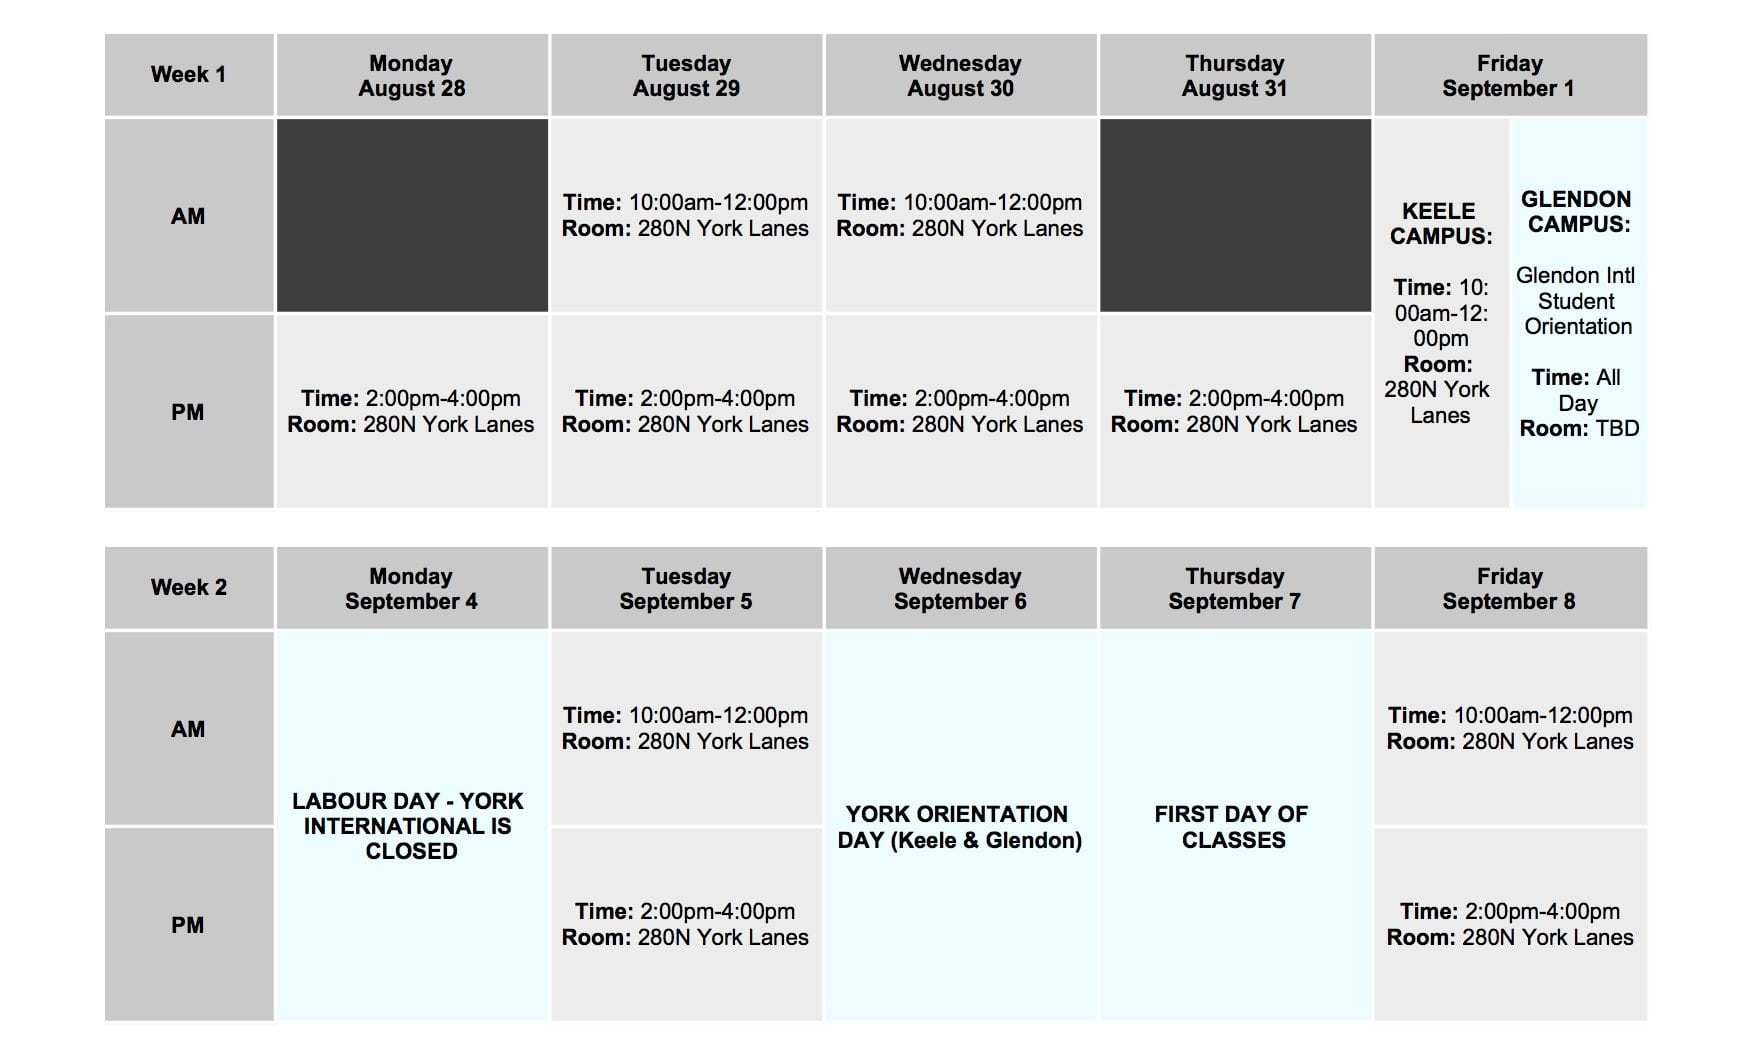 The schedule for York International's New Student Orientation